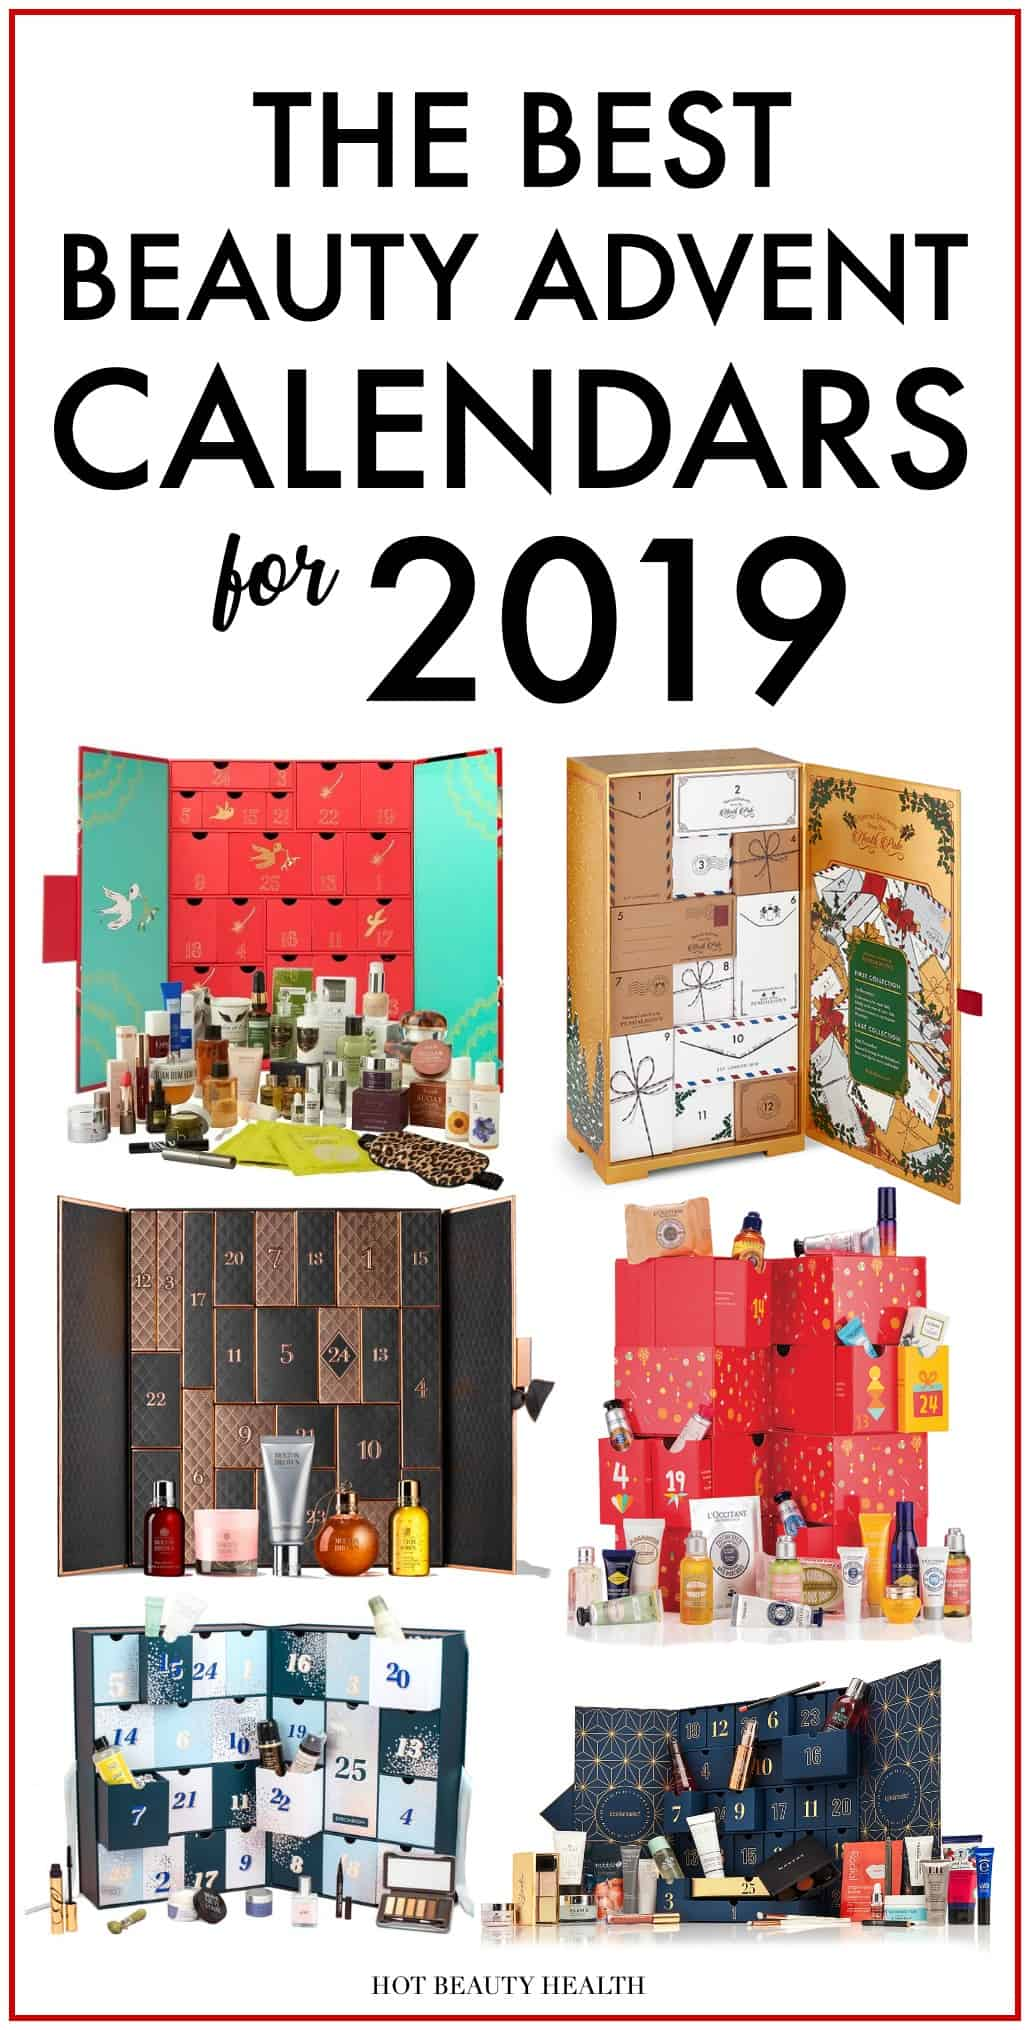 Looking for Christmas gift ideas for her? Check out this huge list of the best beauty advent calendars for the 2019 holiday season! Makeup and skincare addicts rejoice! #hotbeautyhealth #bestbeautyadventcalendars #beautyadventcalendar #giftguide #christmasgiftideas #giftideas #giftideasforher #holidaygifts #makeup #skincare #christmas #beautygifts